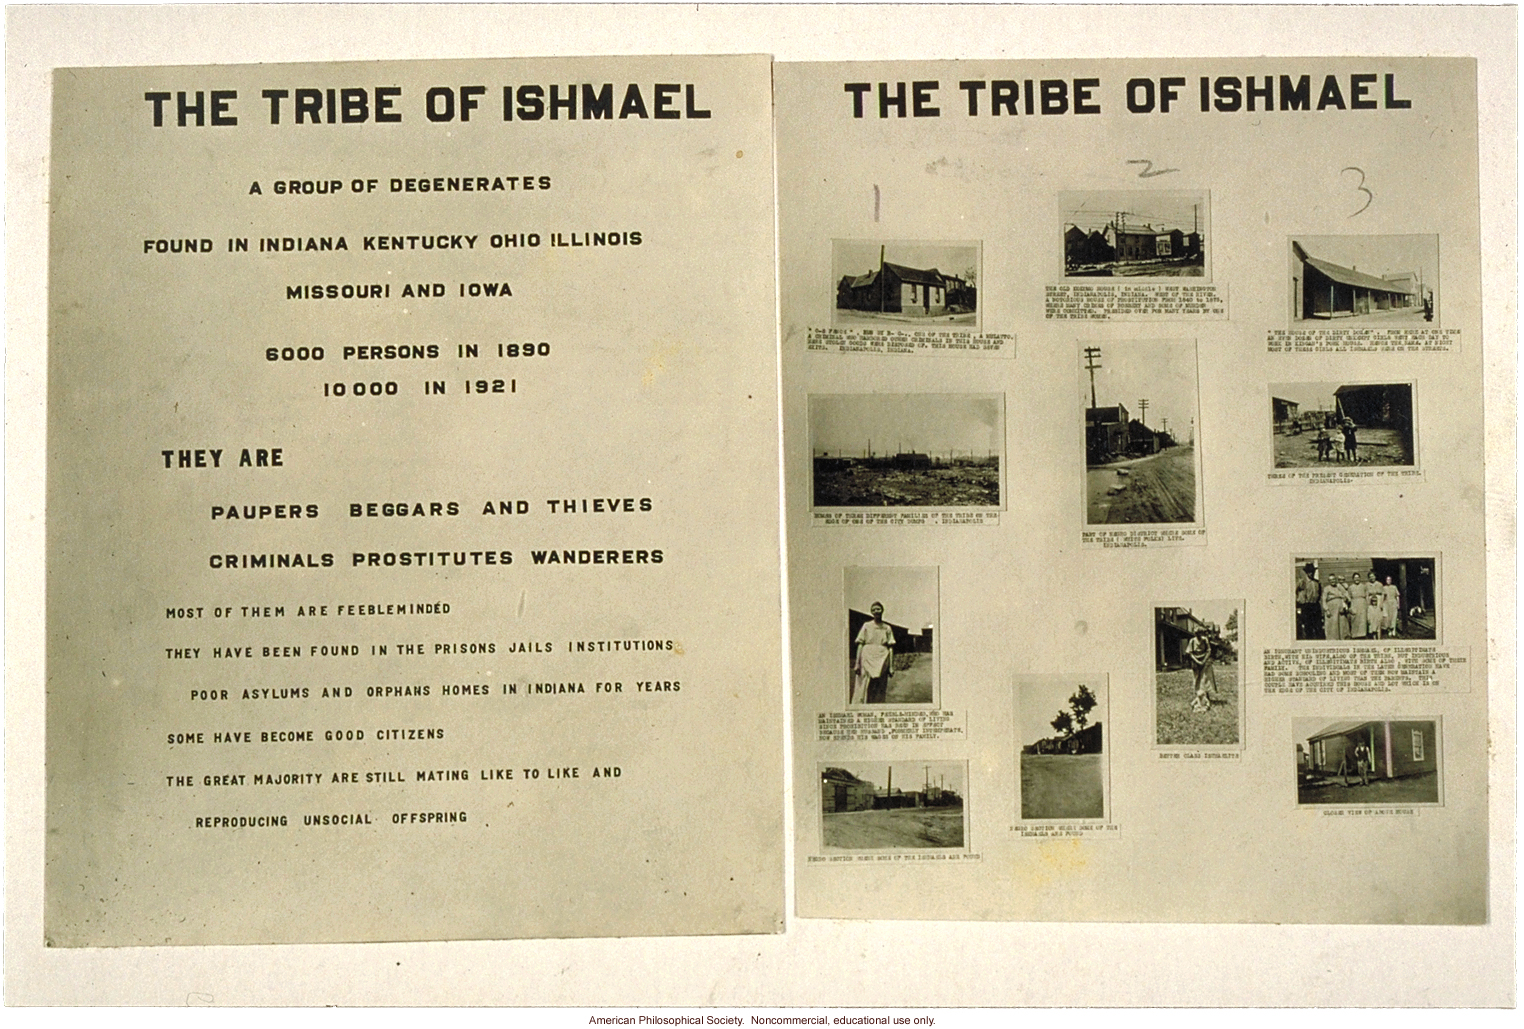 &quote;The tribe of Ishmael: A group of degenerates found in Indiana, Kentucky, Ohio, Illinois, Missouri, and Iowa -- with individual photos and captions